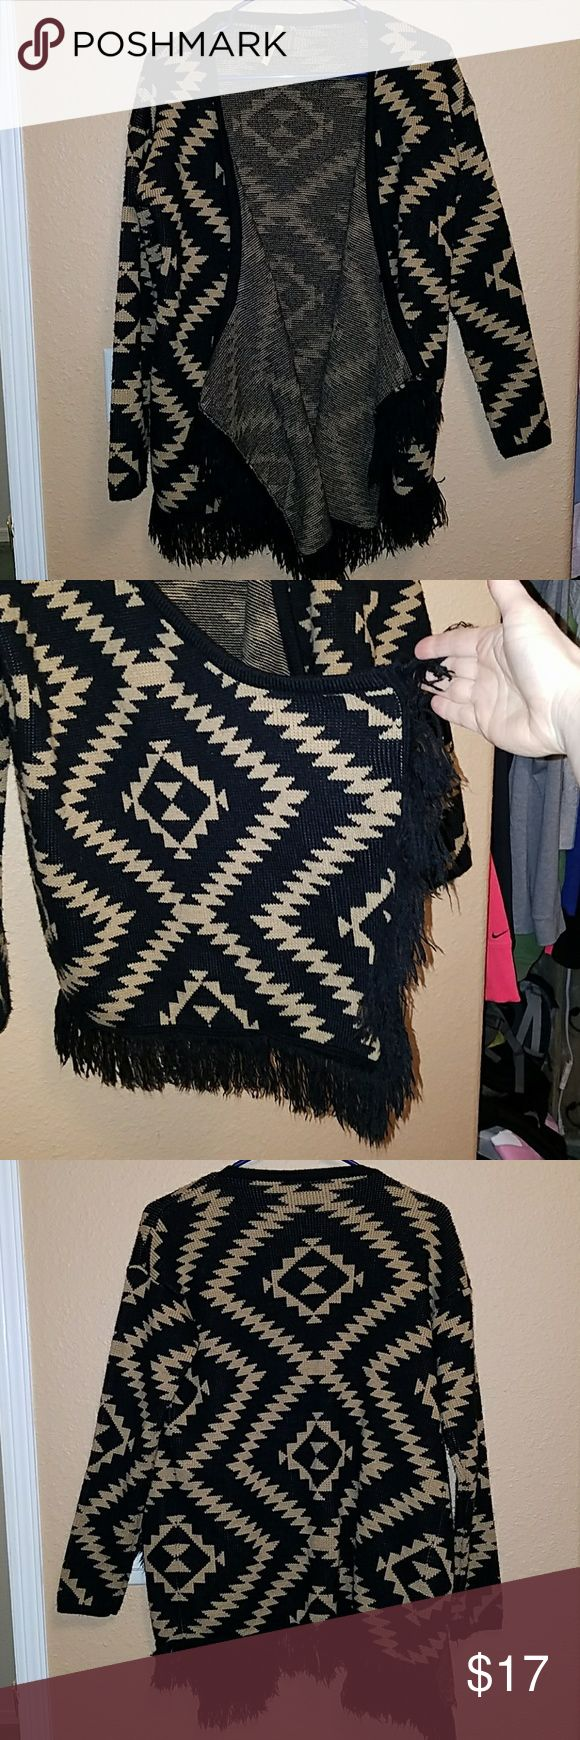 Aztec print cardigan. Super soft Aztec  print cardigan. This is so cute. Has extra length in the front so it hangs down very stylish like. 100%cotton. Very warm. Tag says size s/m. LLOVE Sweaters Cardigans